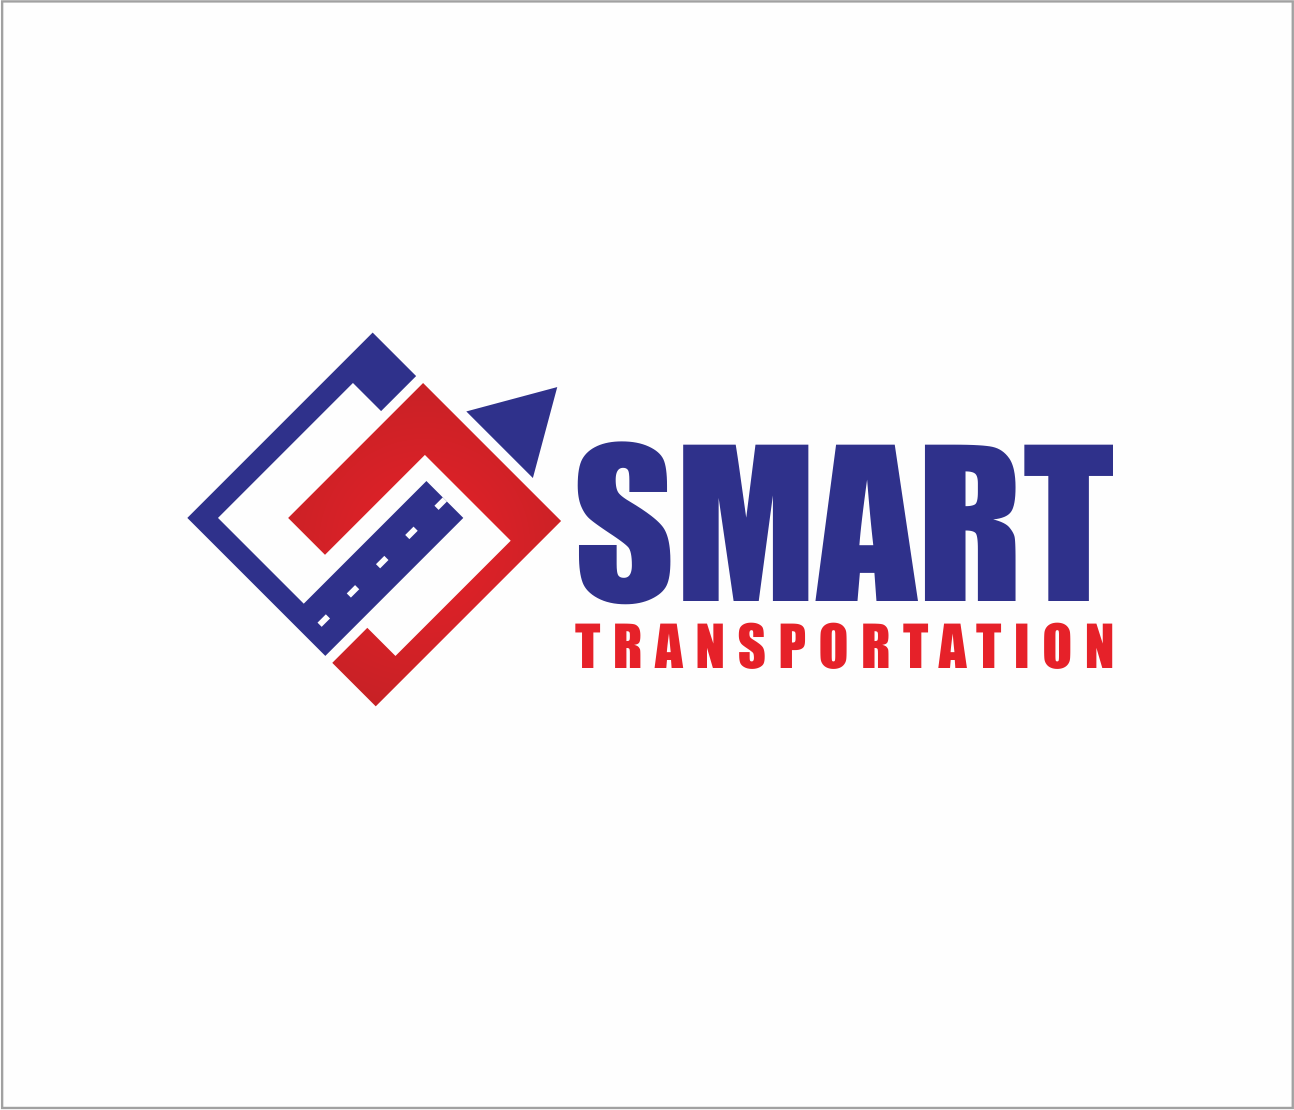 Logo Design by Armada Jamaluddin - Entry No. 153 in the Logo Design Contest Imaginative Logo Design for Smart Transportation.